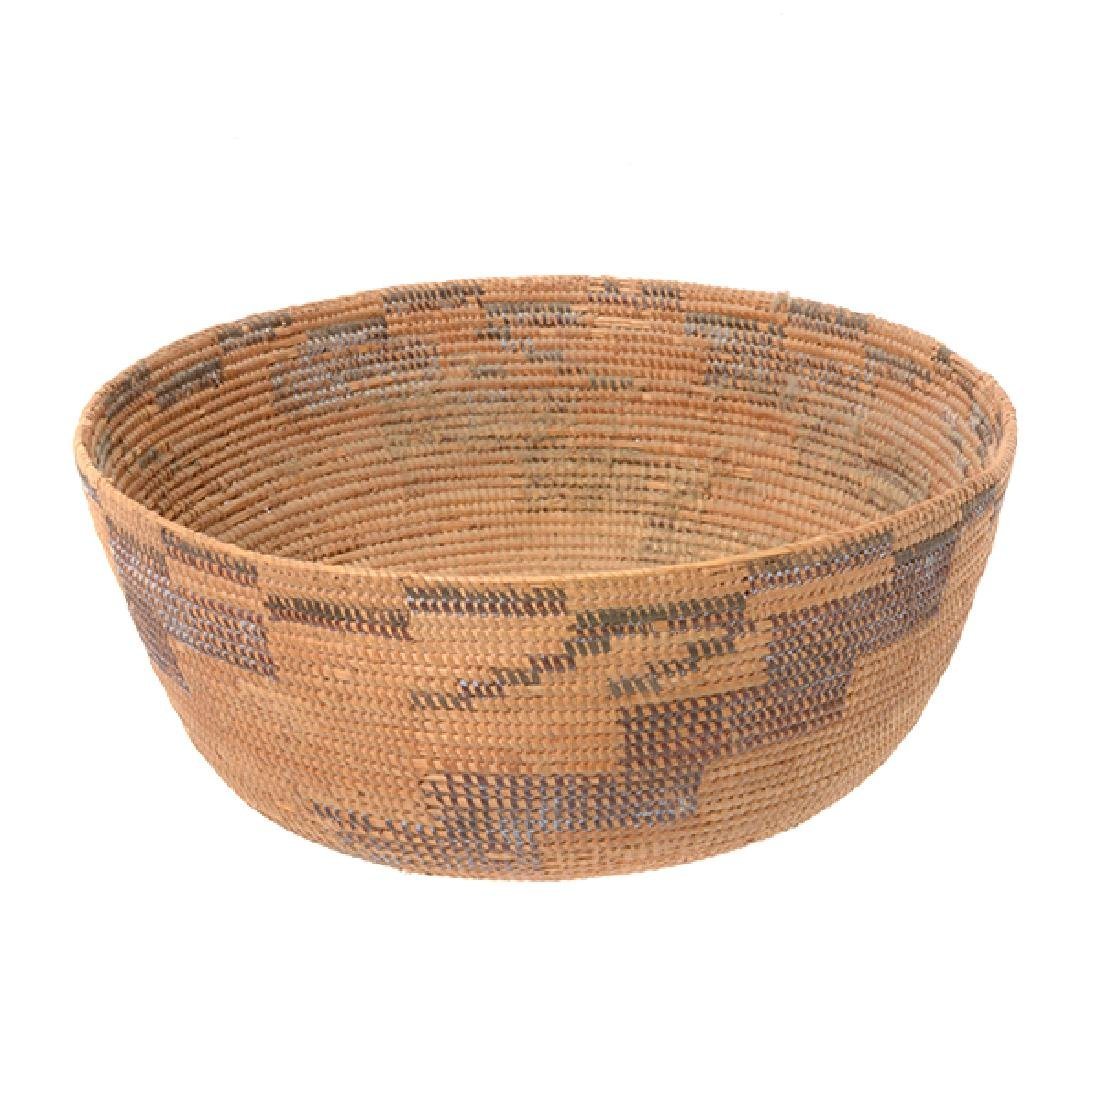 Three Native American Hand Woven Baskets - 2